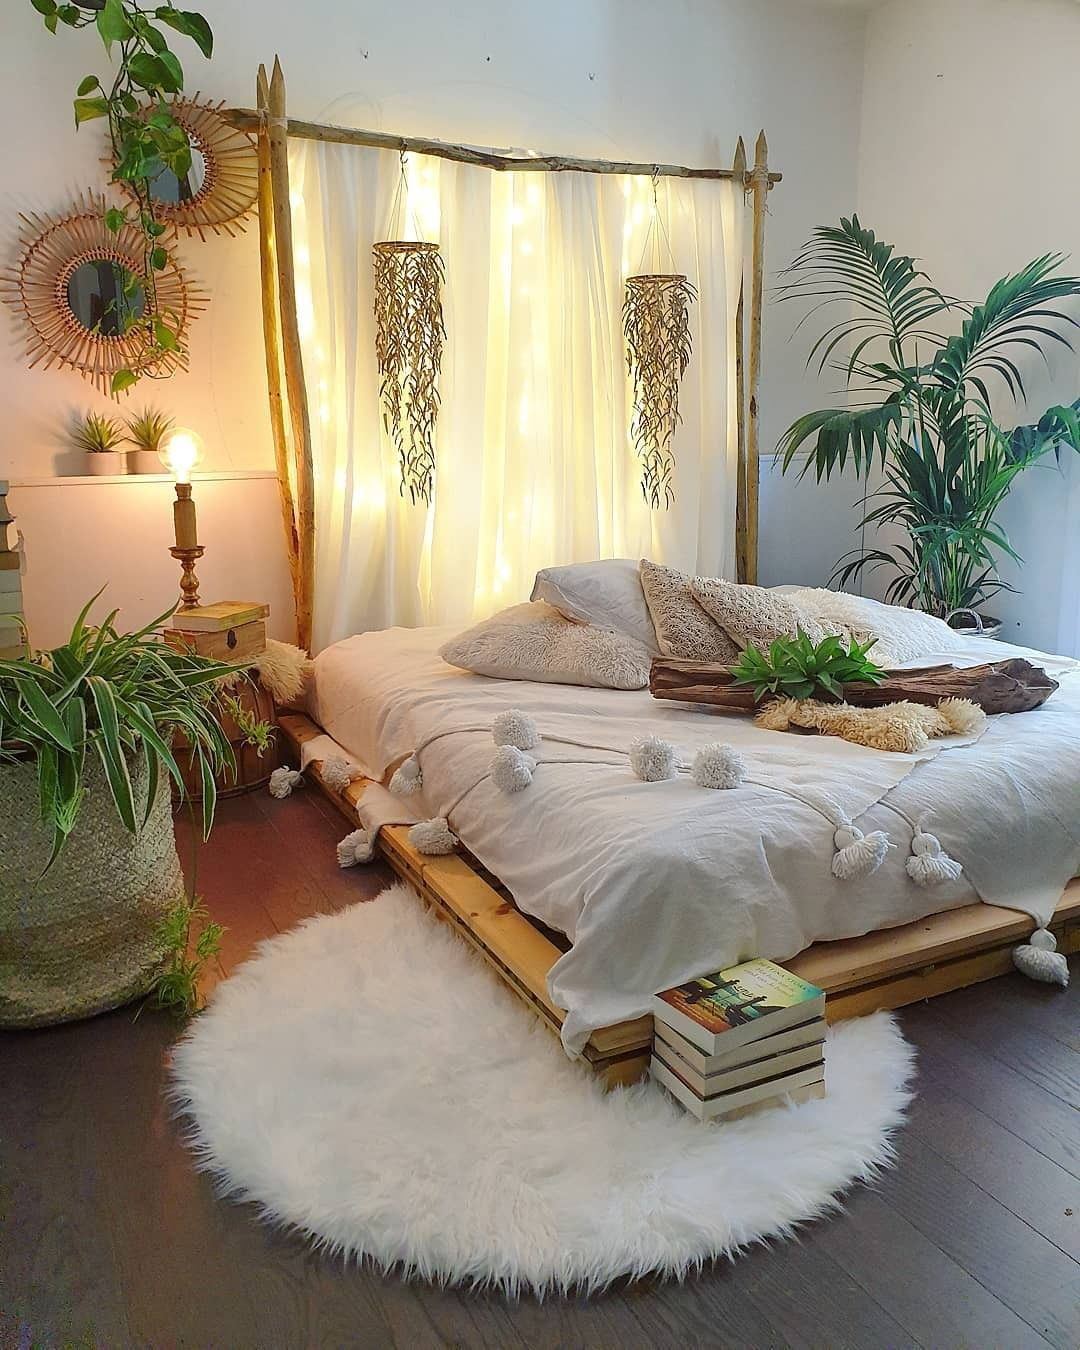 Bohemian Interior Decor On Instagram Via Bohemian Decors Can You Describe This Bed In One Word Follow U Bedroom Decor Bedroom Layouts Bedroom Makeover